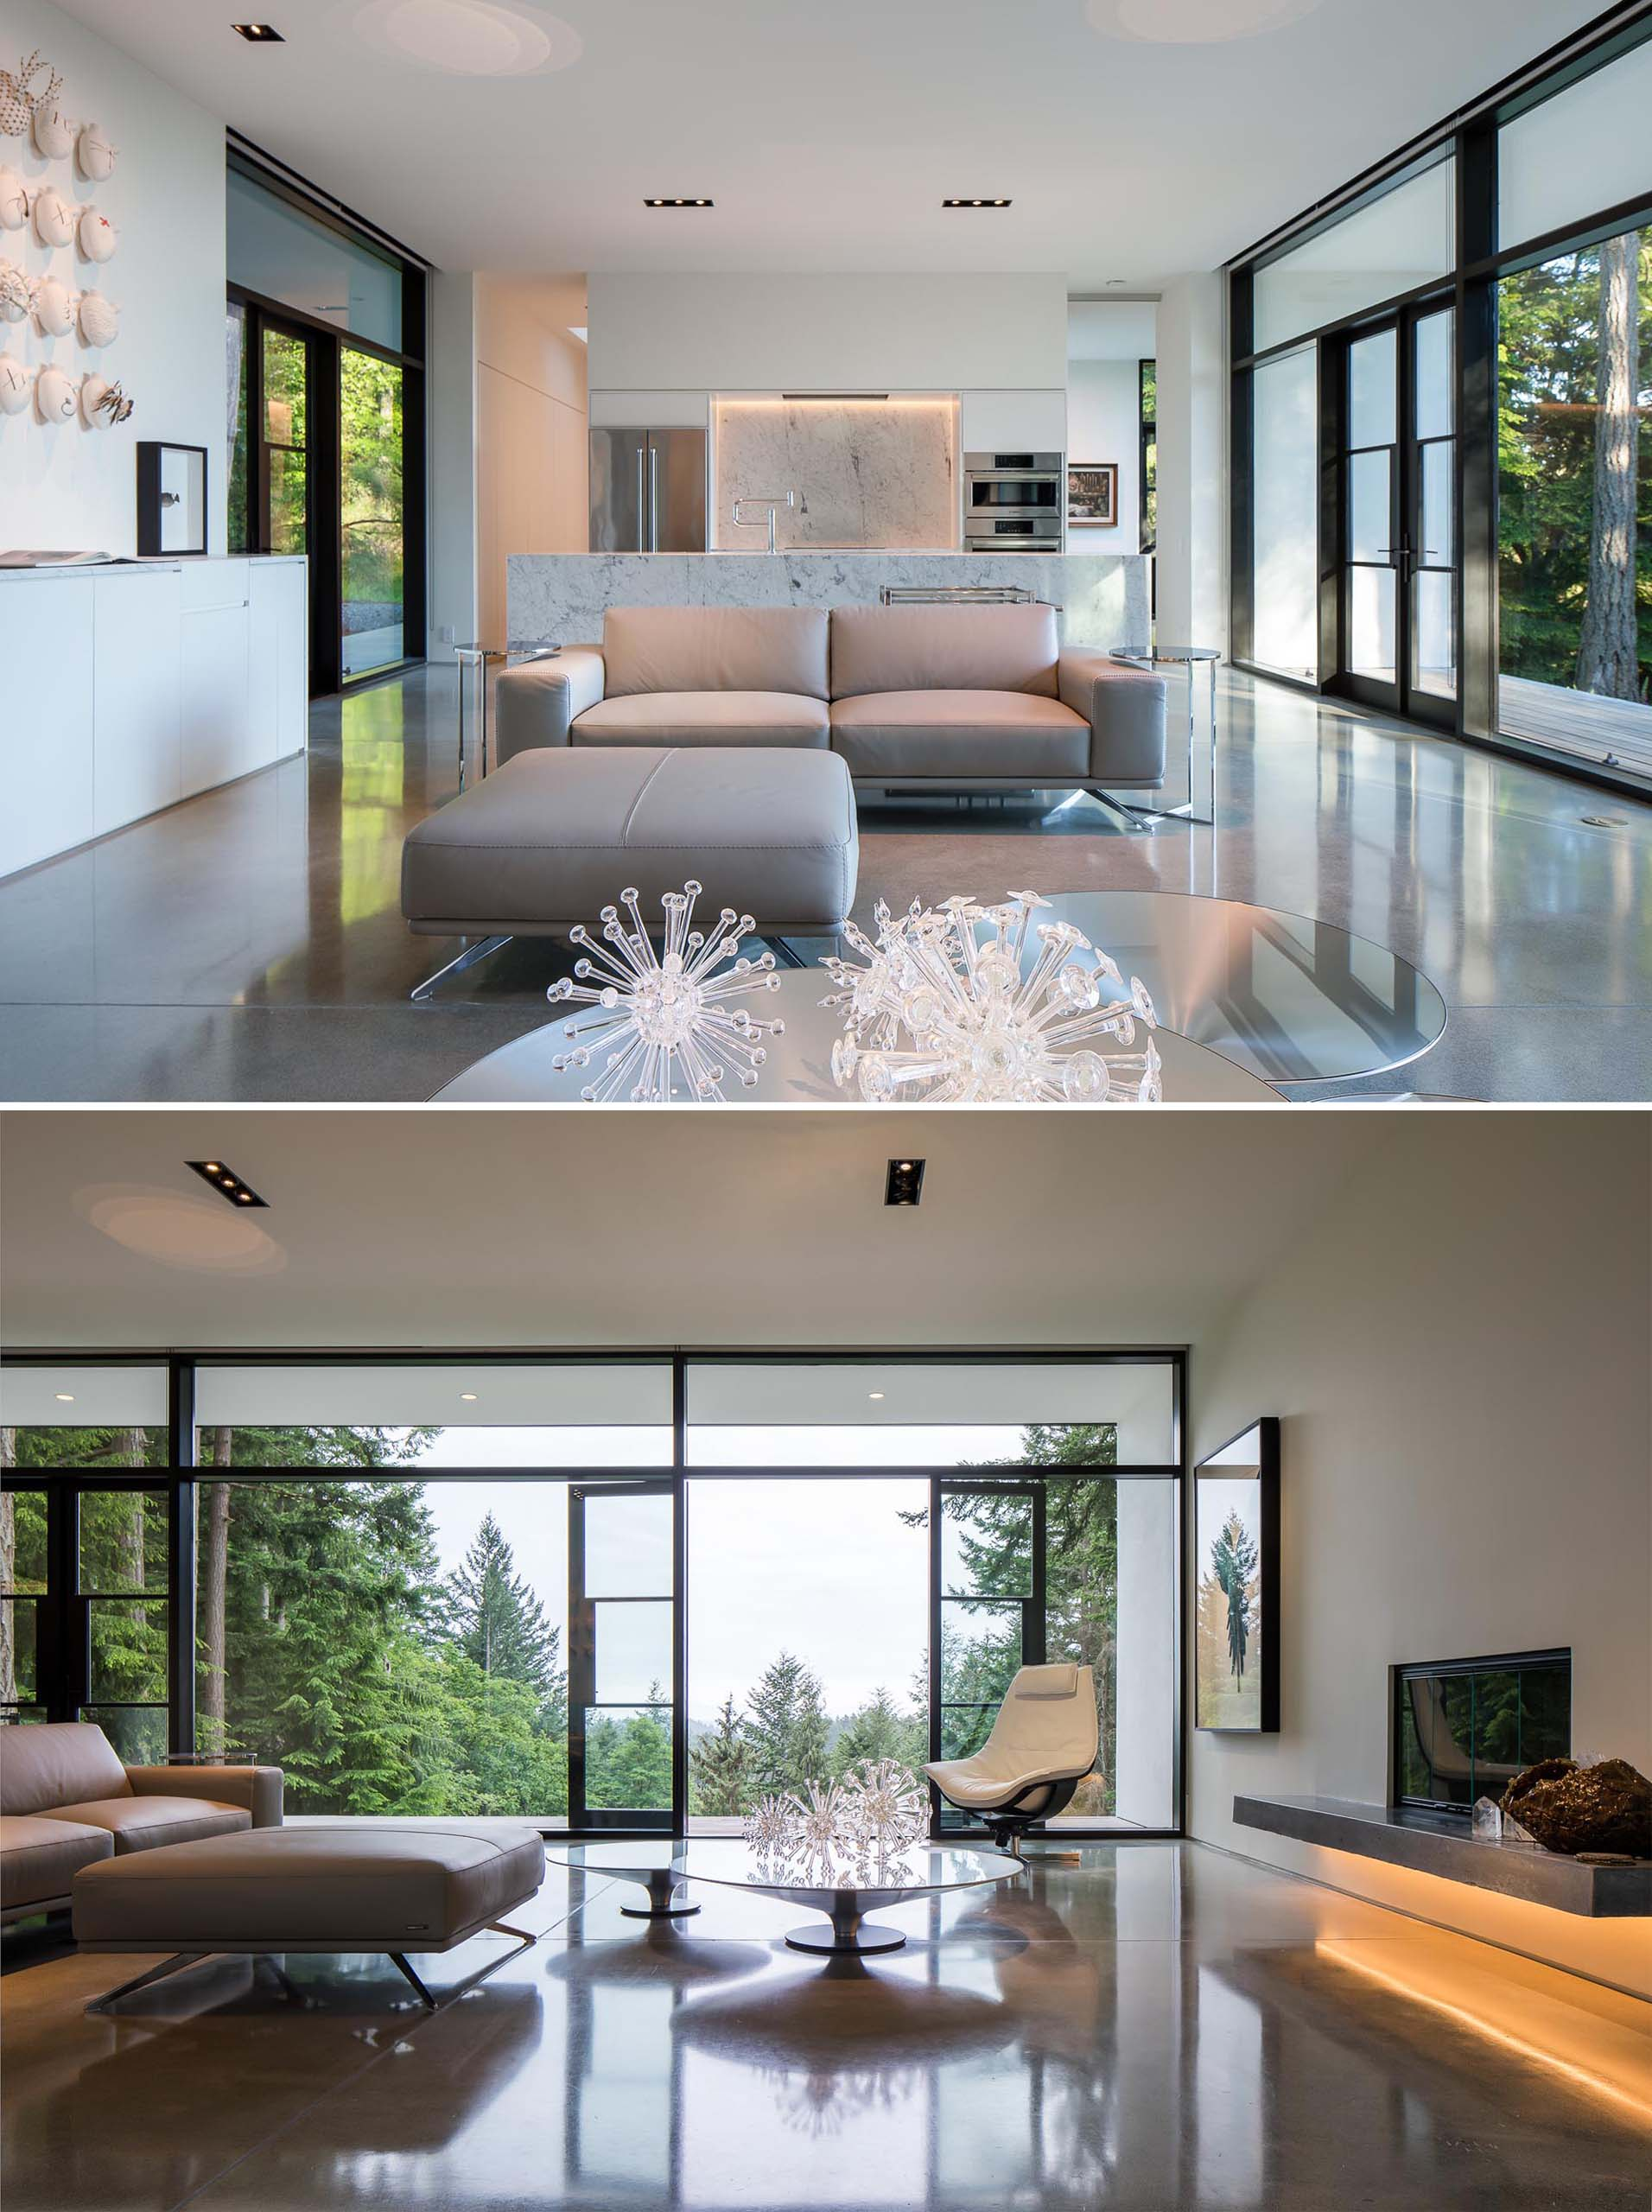 The interior of the home has all white surfaces with Carrera marble countertops and gray concrete, creating a sleek contemporary appearance, similar to that of an art gallery.